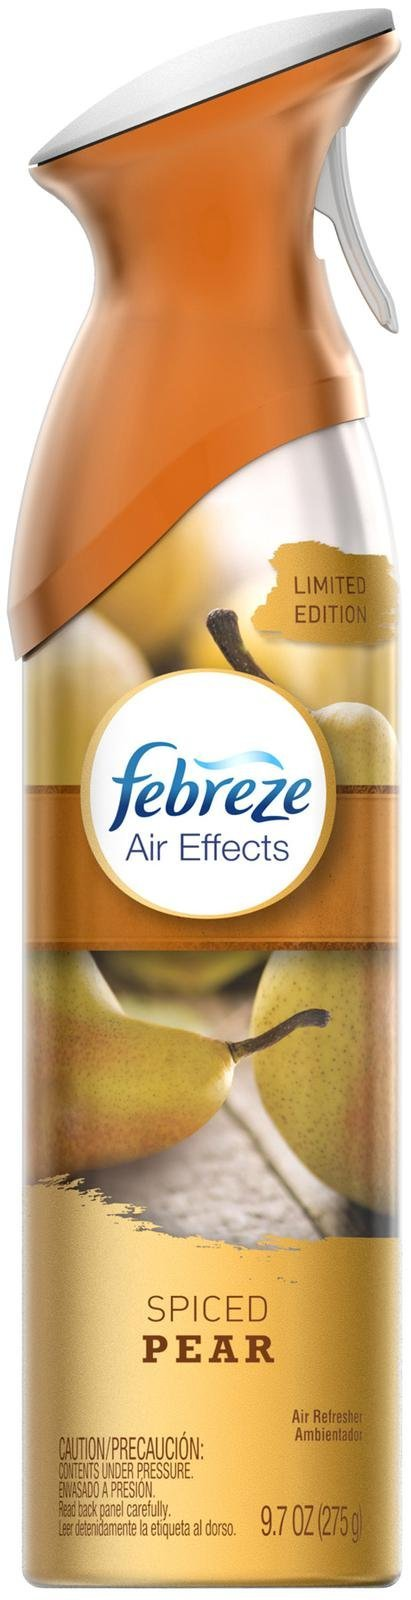 Febreze Air Effects - Limited Edition - Spiced Pear - Net Wt. 9.7 OZ (275 g) Each - Pack of 2